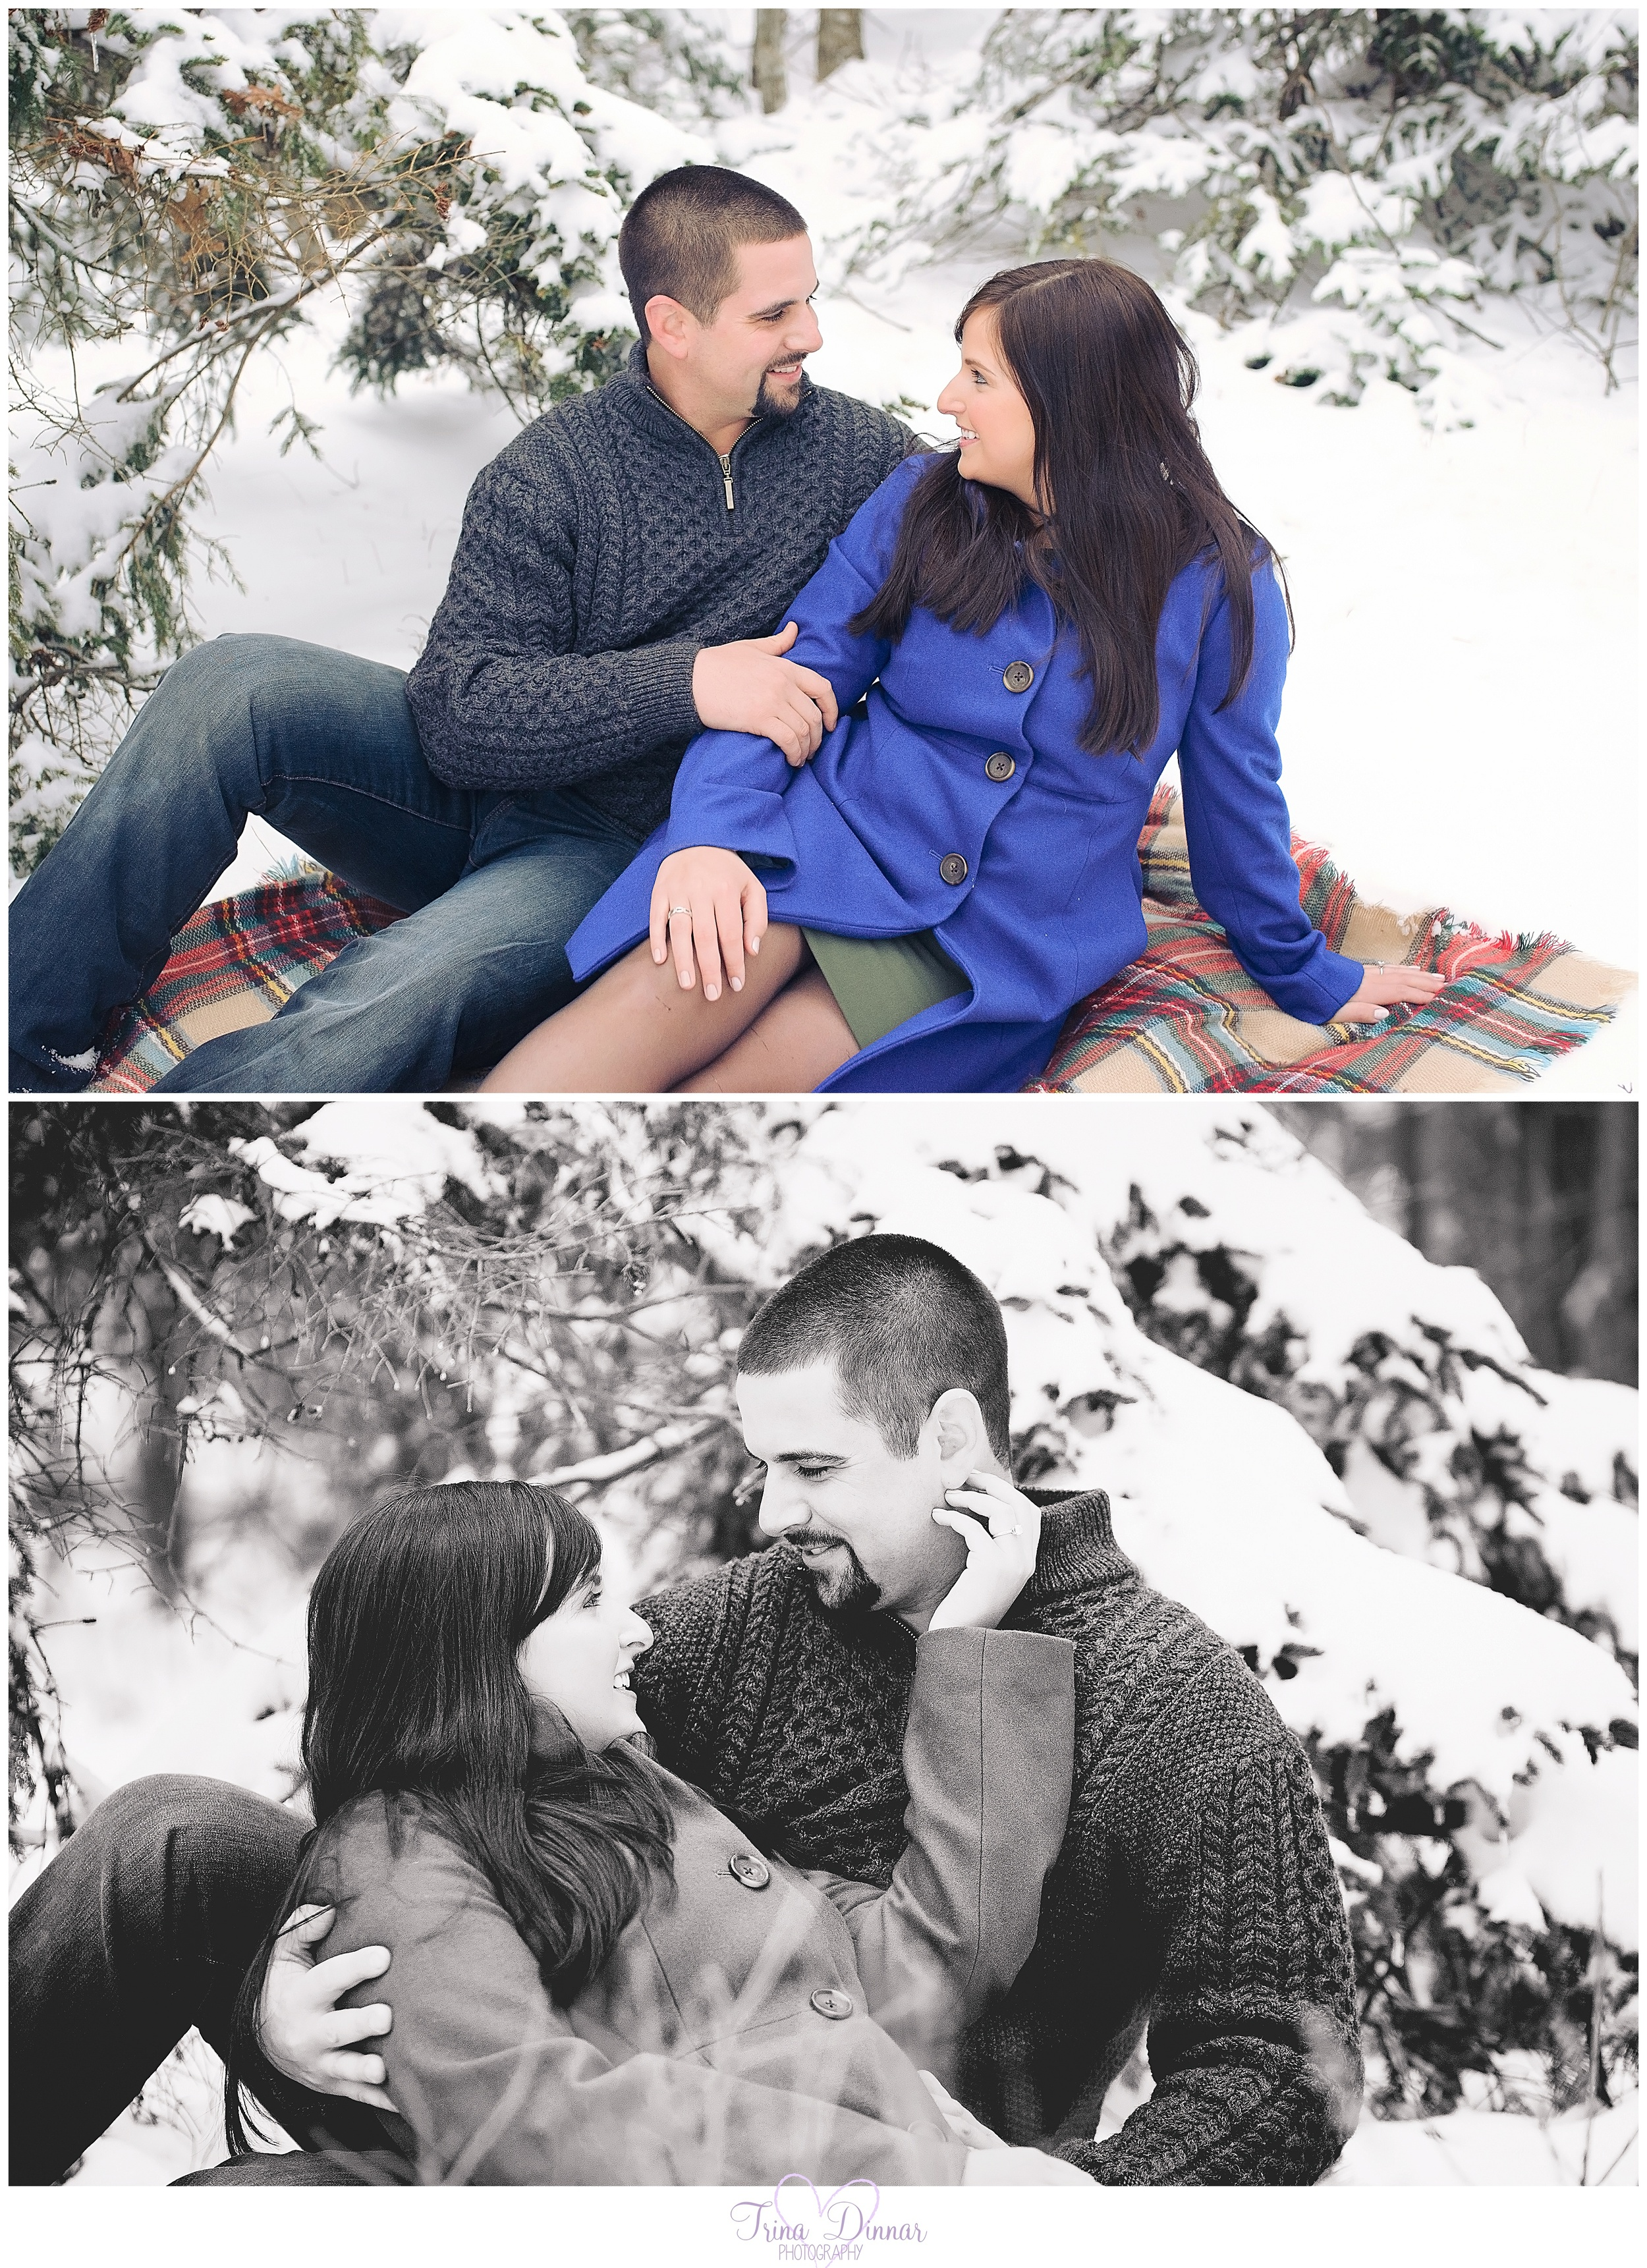 Winter engagement photos in Southern Maine.